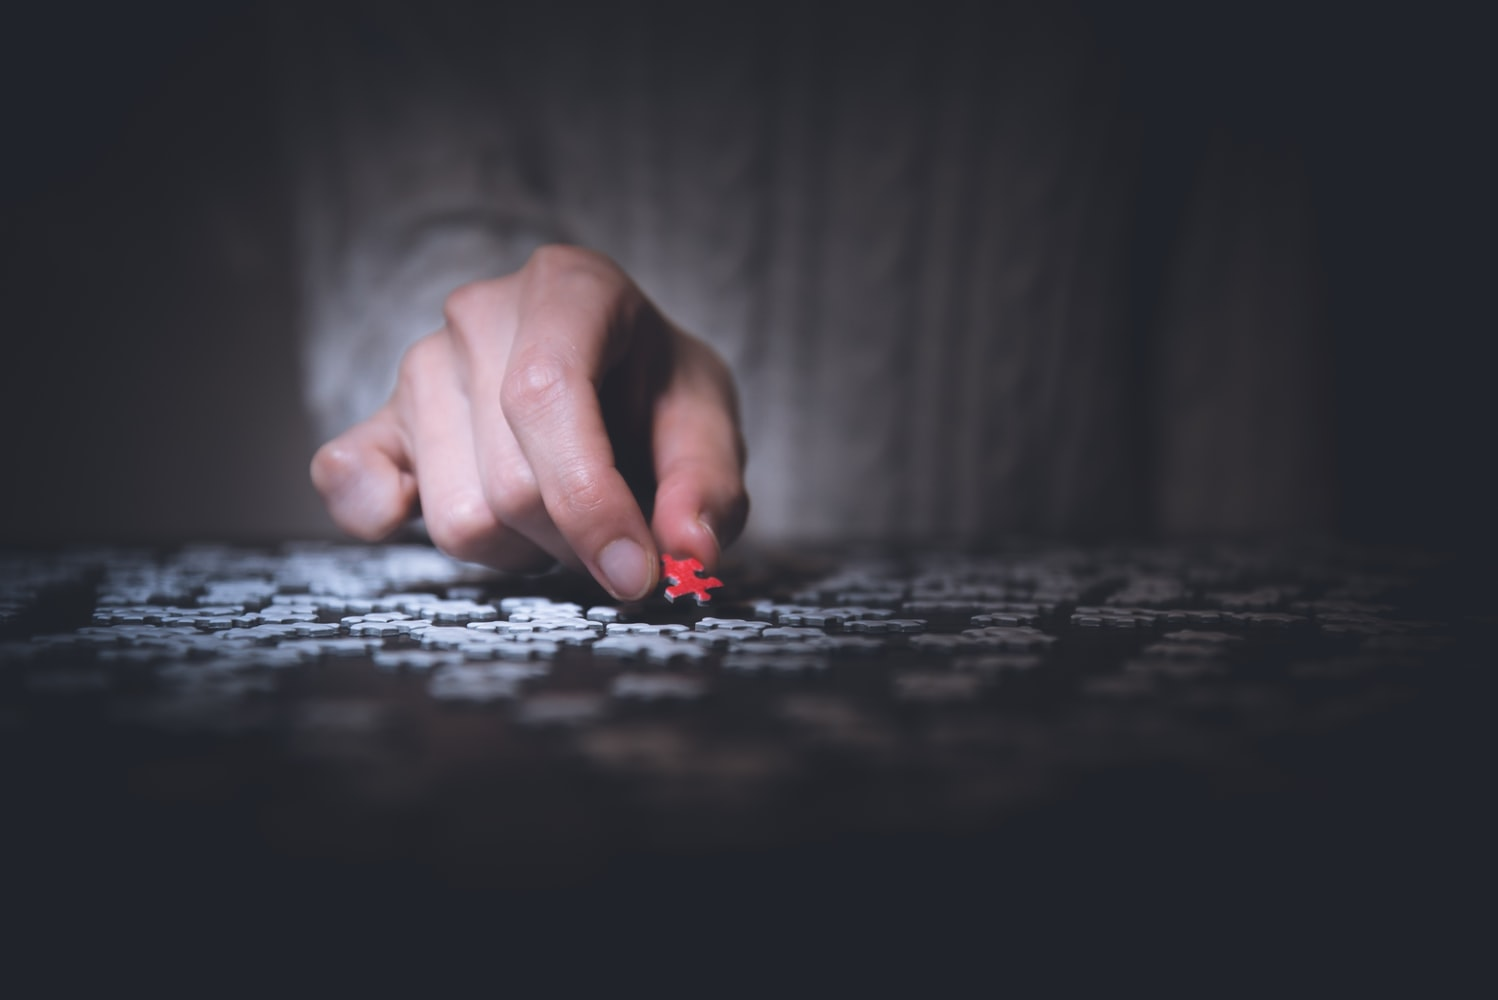 Number Puzzle Games To Flex Your Problem-Solving Skills